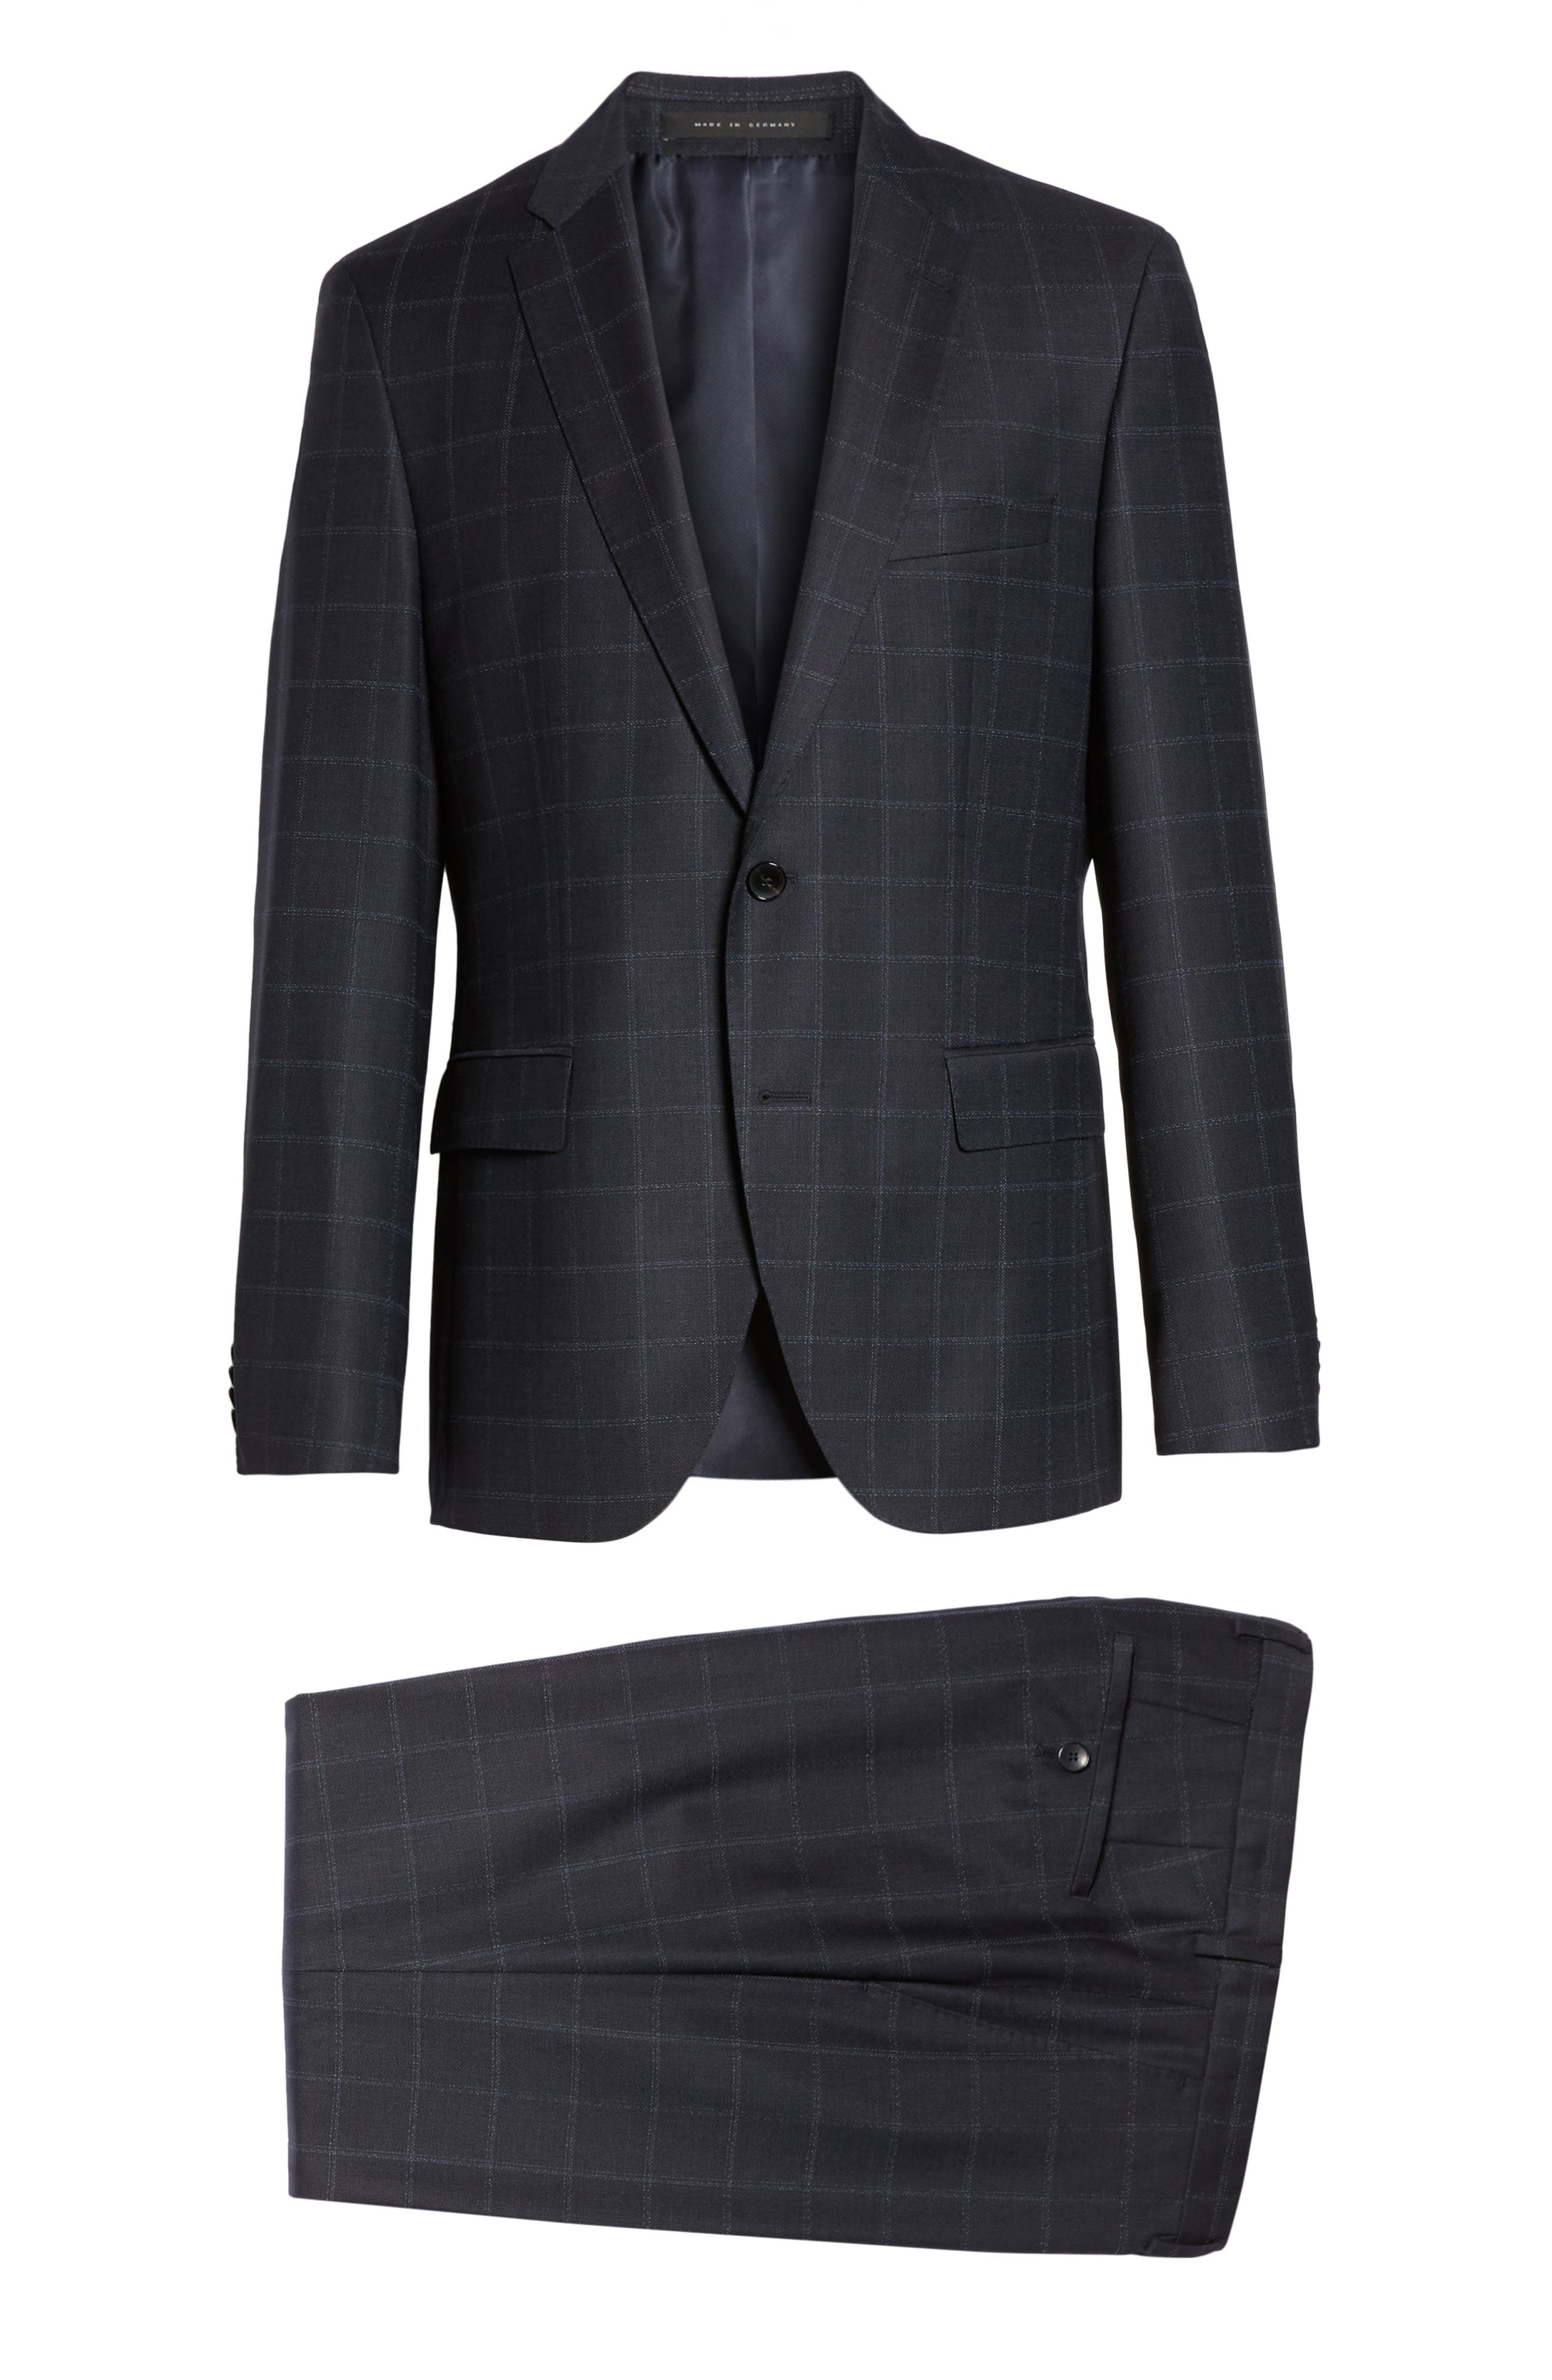 Johnstons/Lenon Classic Fit Windowpane Wool Suit,                             Alternate thumbnail 8, color,                             410